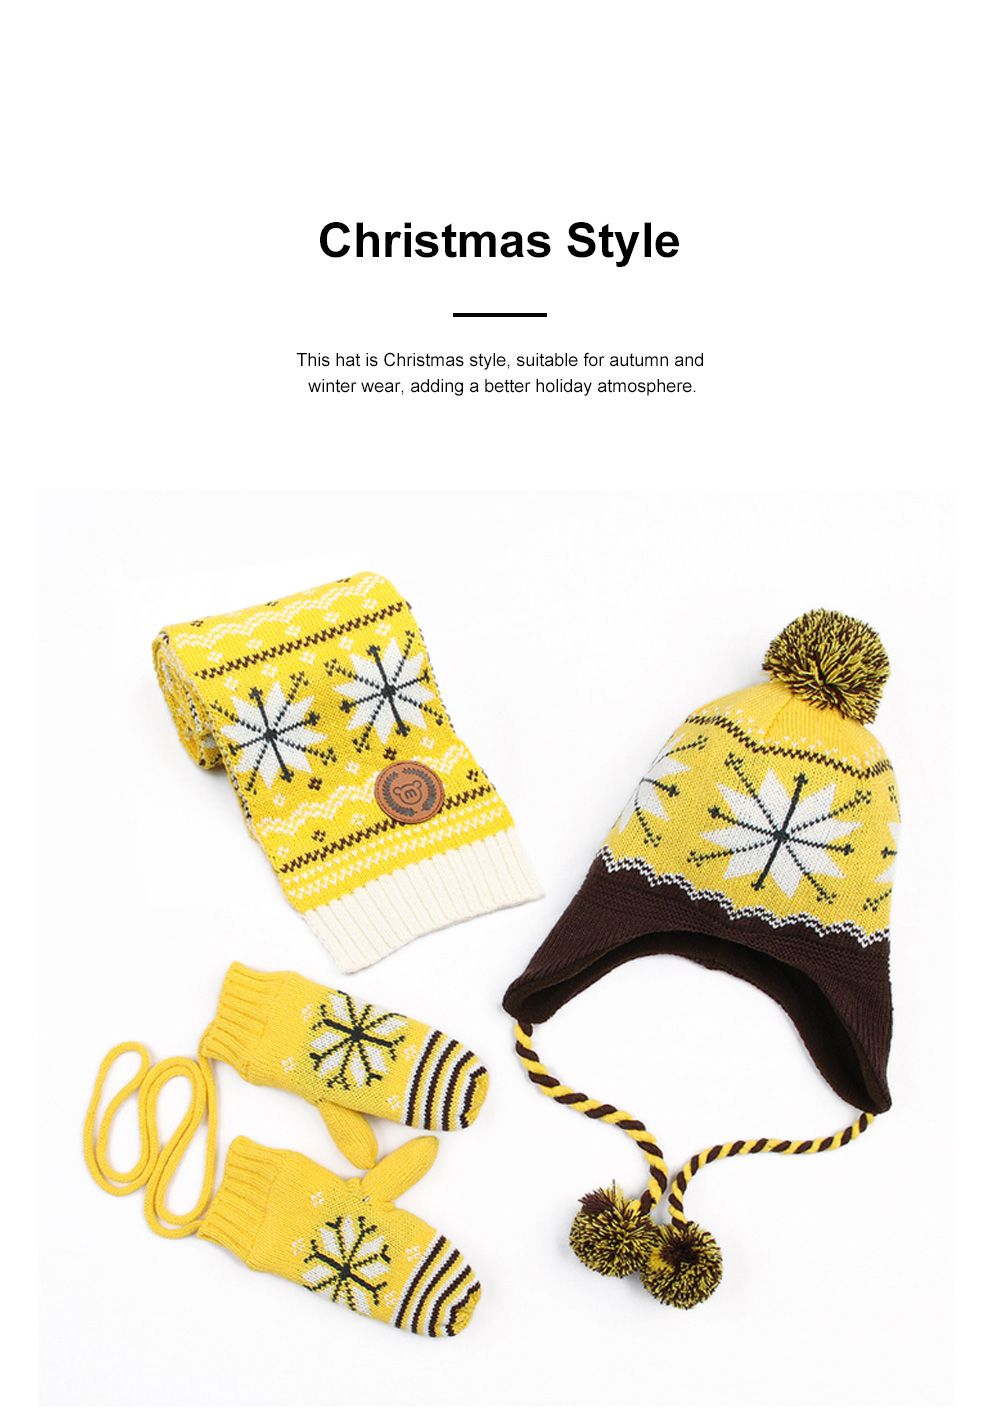 New Children's Hat Warm and Plush Hat for Boys and Girls Snow Flake Decorated Christmas Style Autumn Winter Hat 3